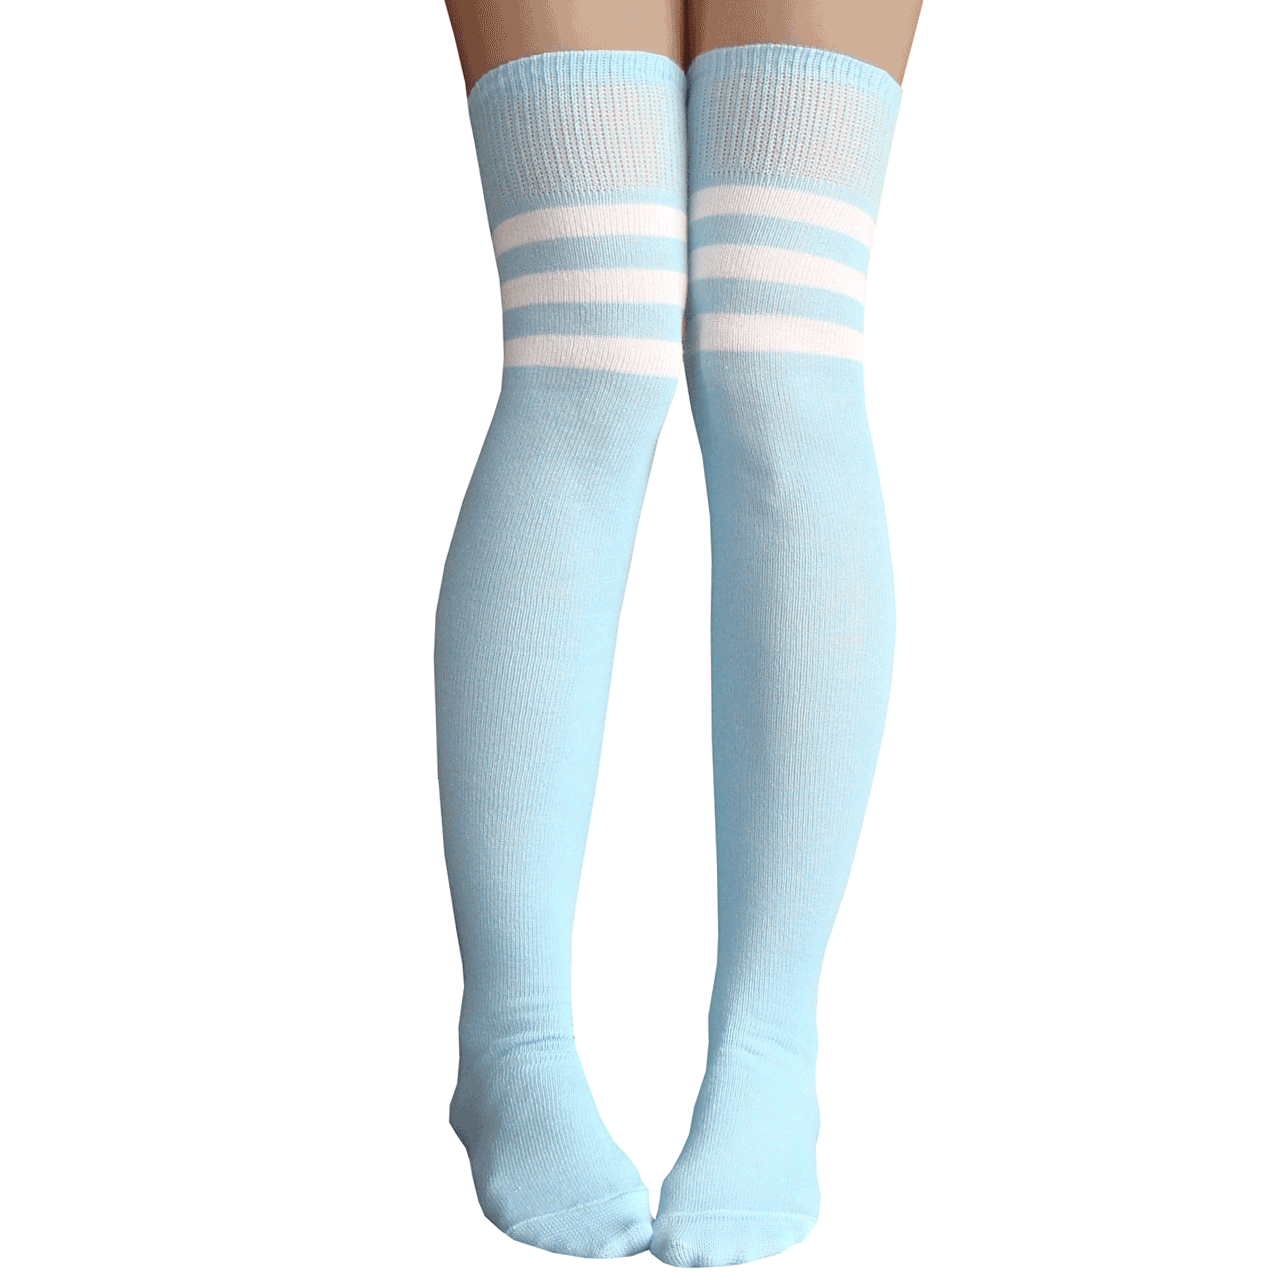 3acf9ec139b34 See 1 more picture. baby blue thigh highs. blue and white striped athletic  long socks